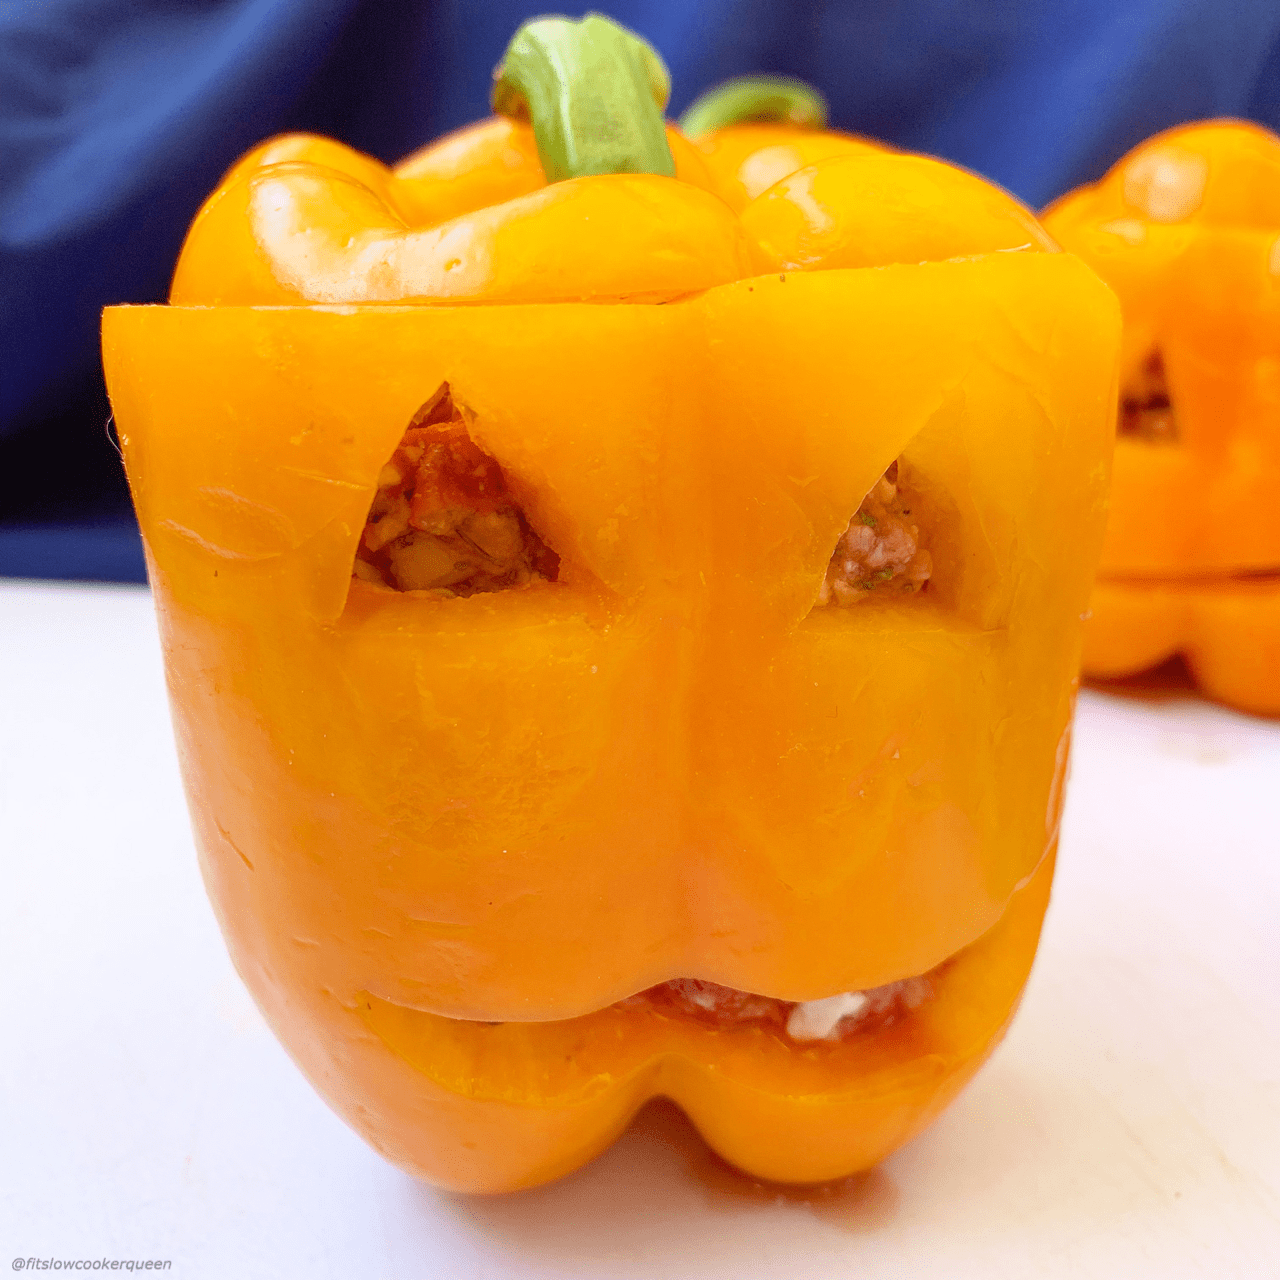 These jack-o-lantern stuffed peppers are a fun way to had some Halloween fun to your dinner table. The best part is they're low-carb, paleo, whole30, and made in the slow cooker for an super easy meal.